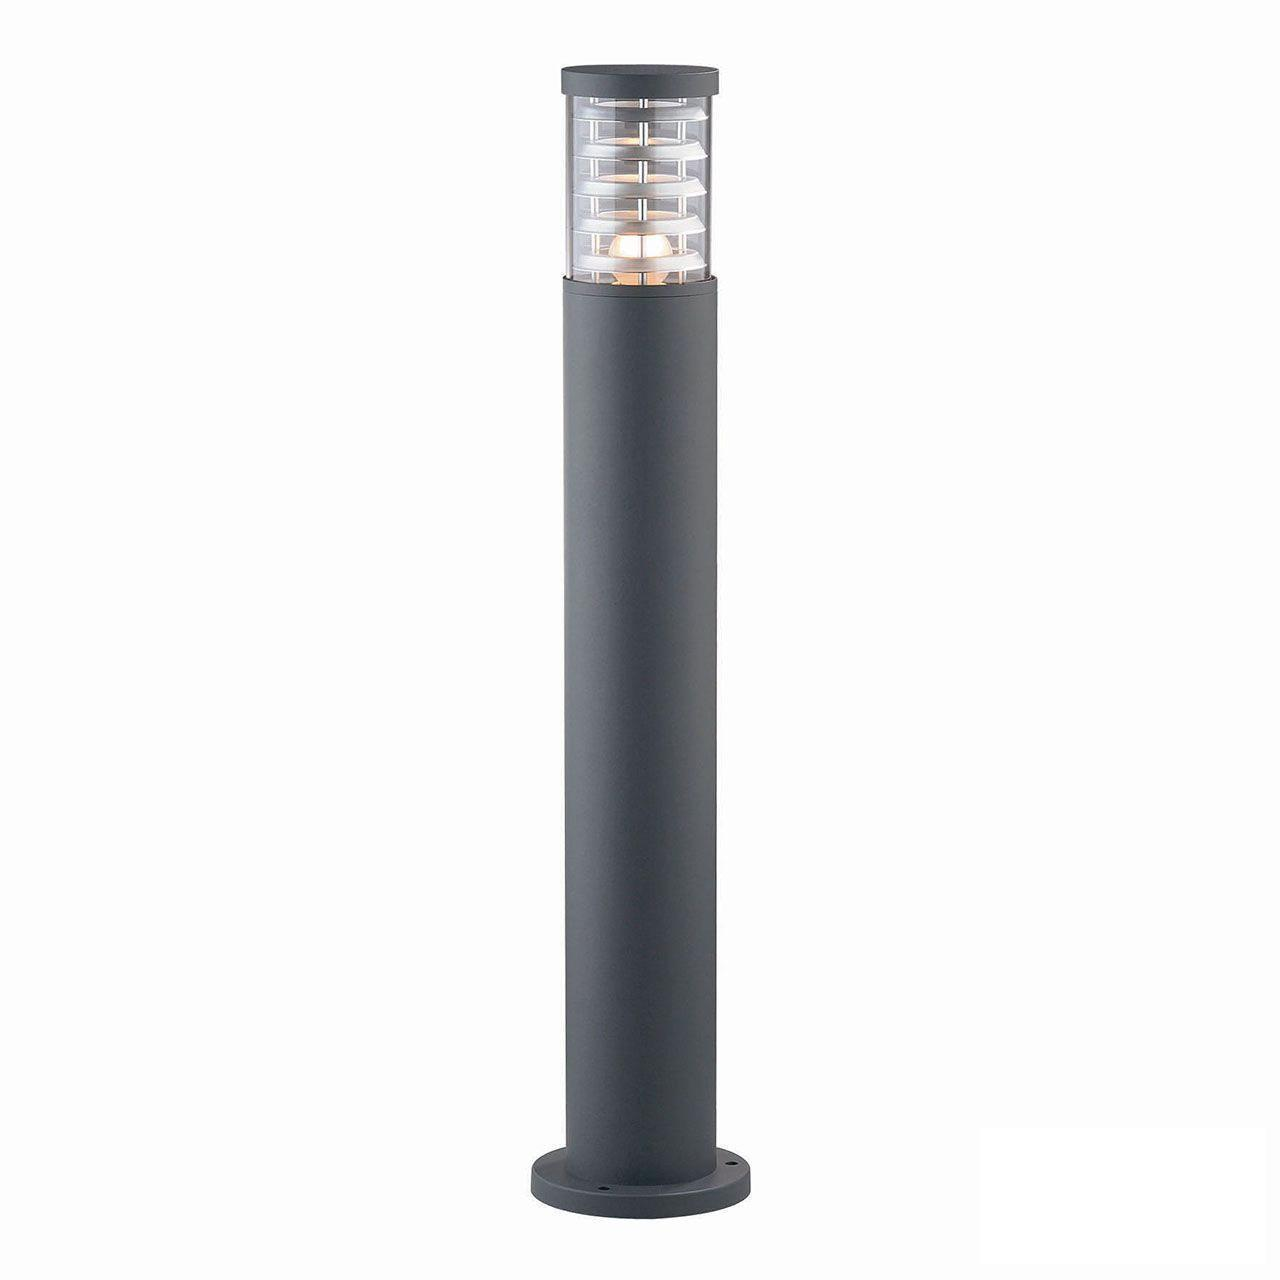 Уличный светильник Ideal Lux Tronco PT1 Big Antracite ideal lux уличный светильник ideal lux bamboo pt1 big antracite